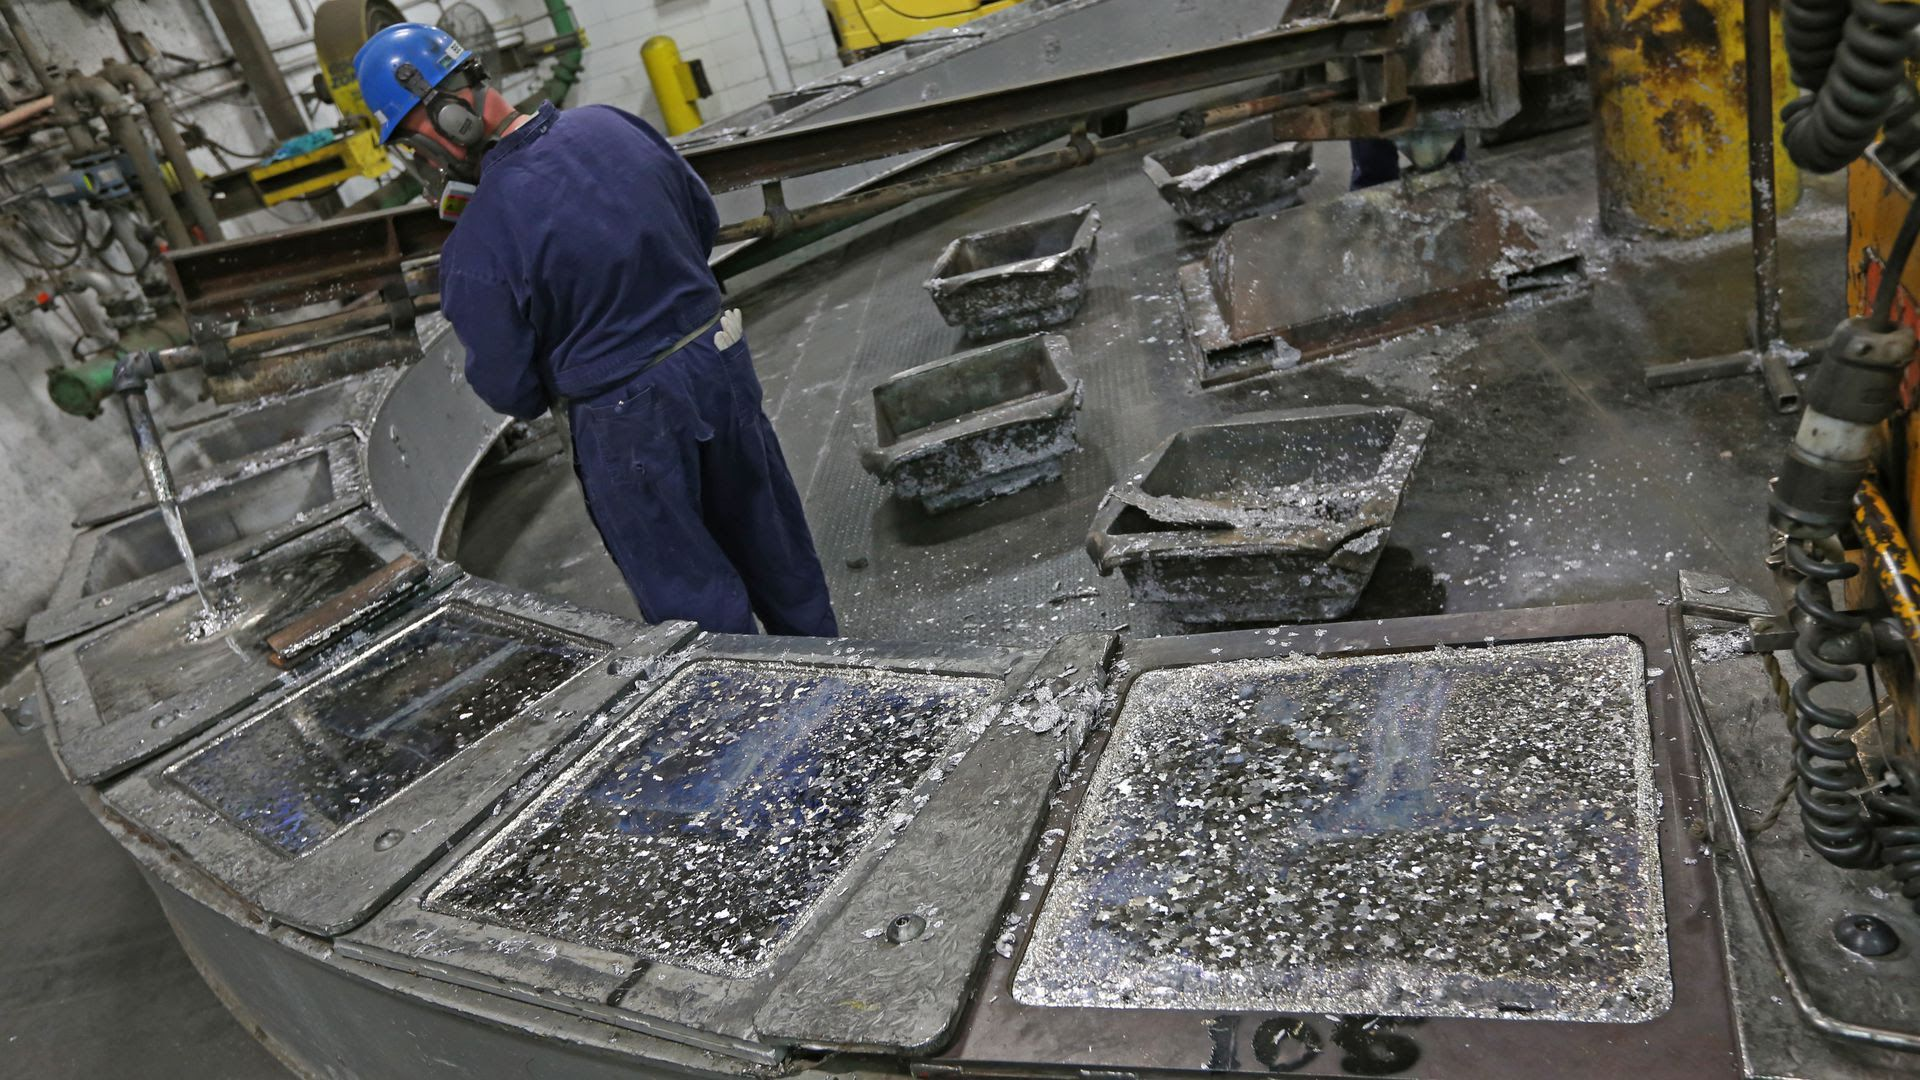 Gopher Resource employee pours melted lead from recycled batteries into ingots for reuse at a Gopher Resource plant.